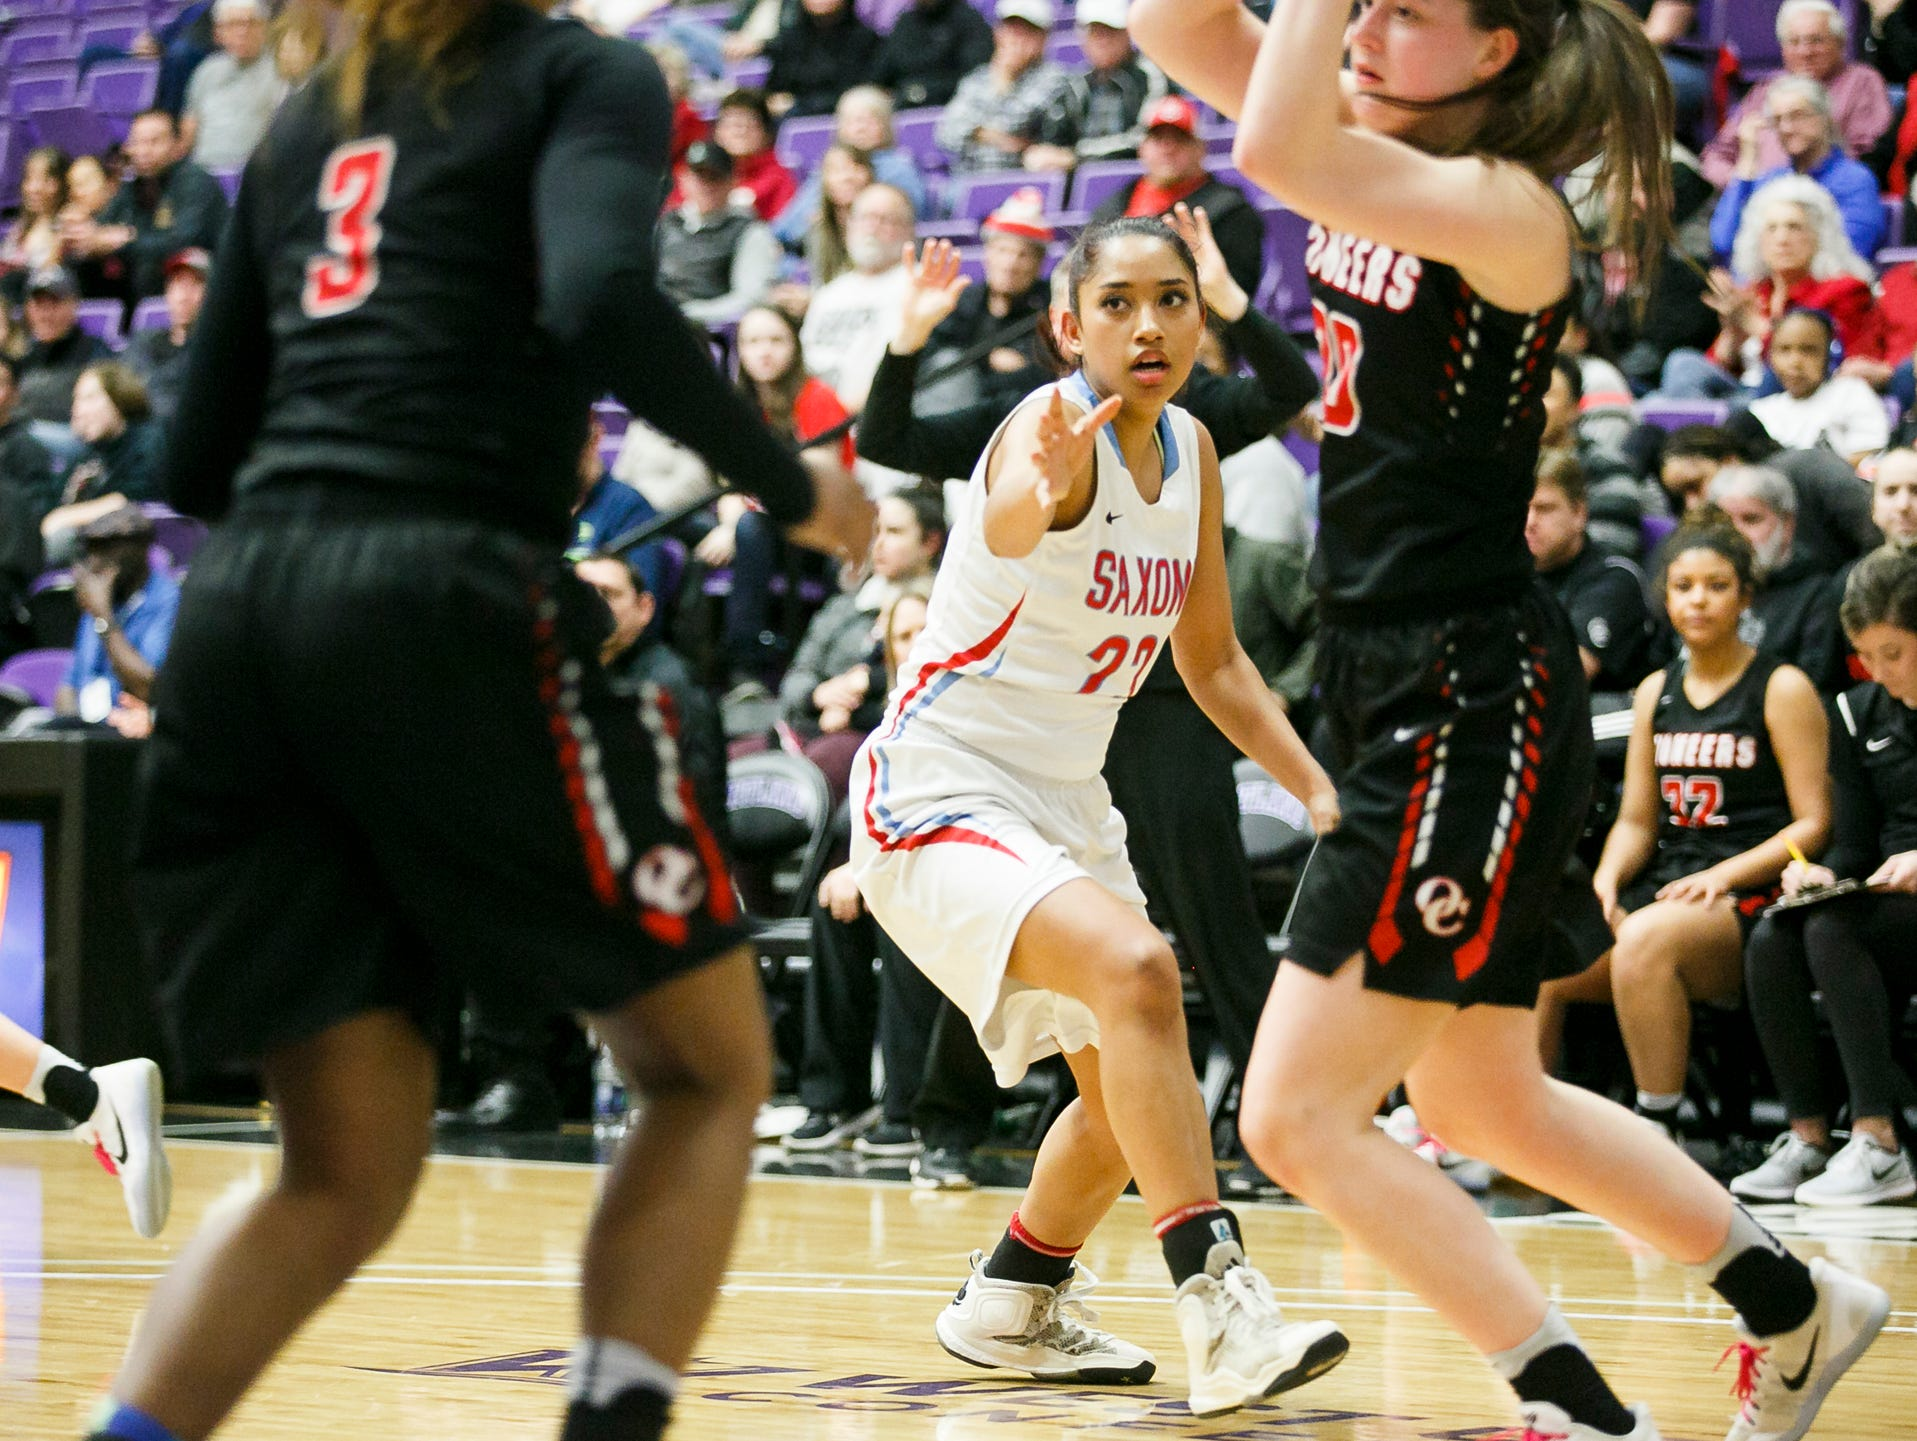 South Salem's Dani Harley tries to block a pass between Oregon City players in the OSAA 6A semifinal state championships on Friday, March 10, 2017, at the University of Portland. South Salem lost 46-54.